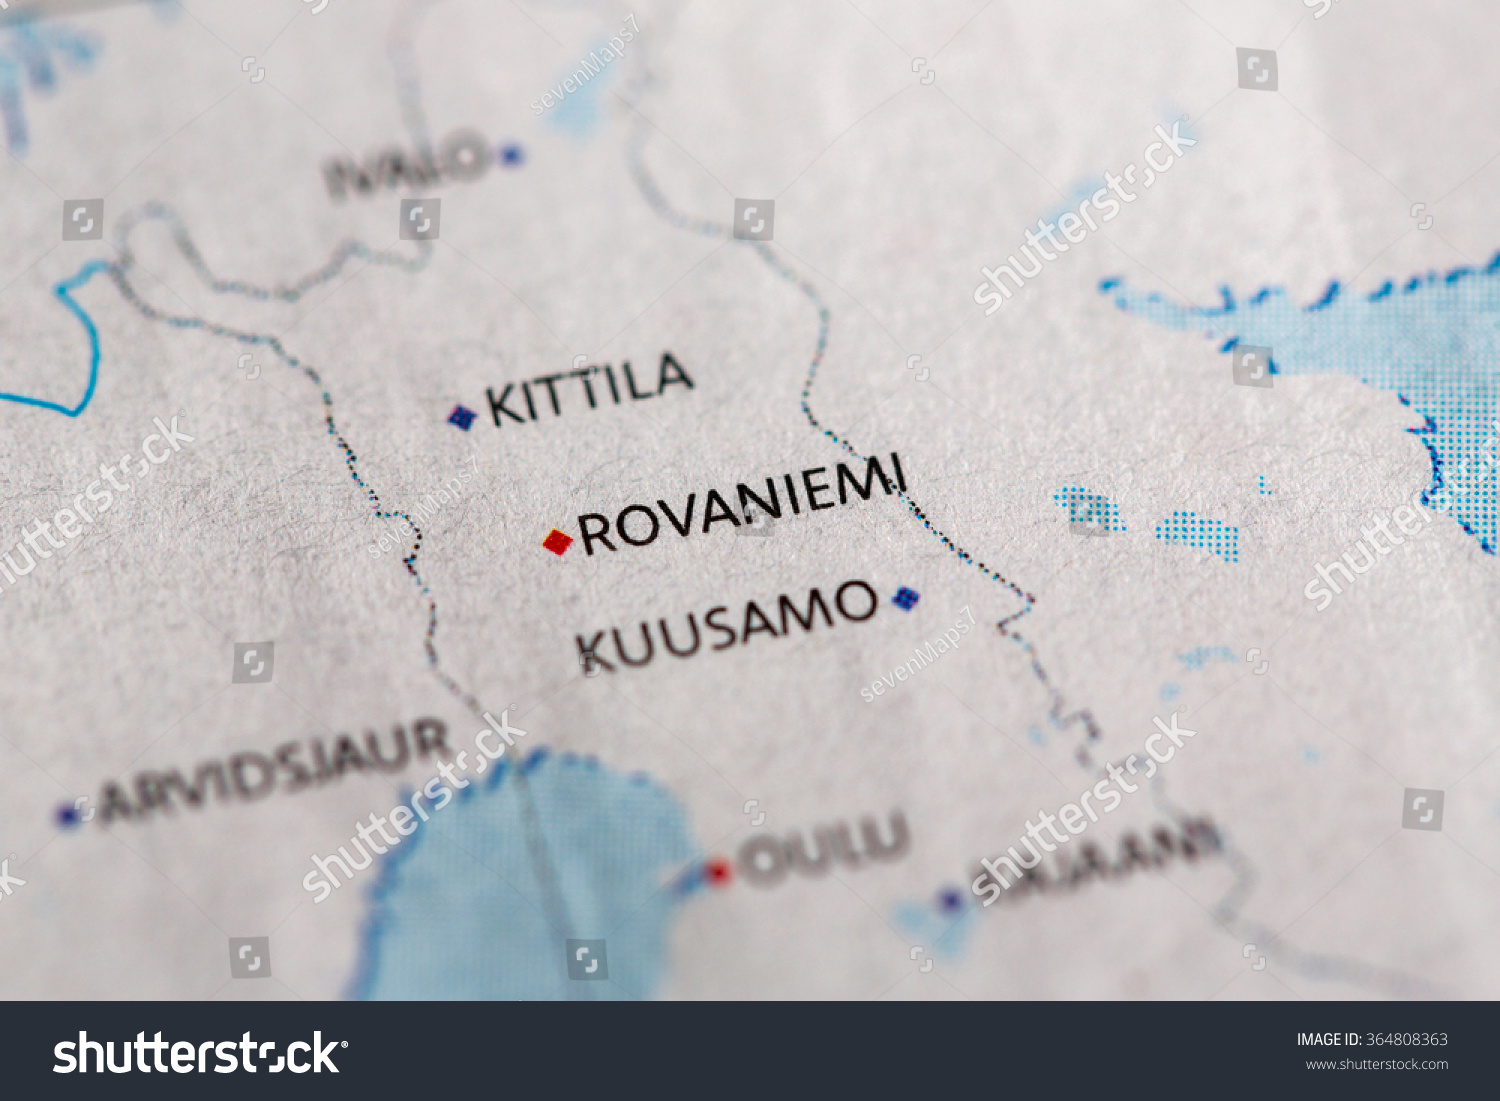 Closeup Rovaniemi Finland On Political Map Stock Photo 364808363